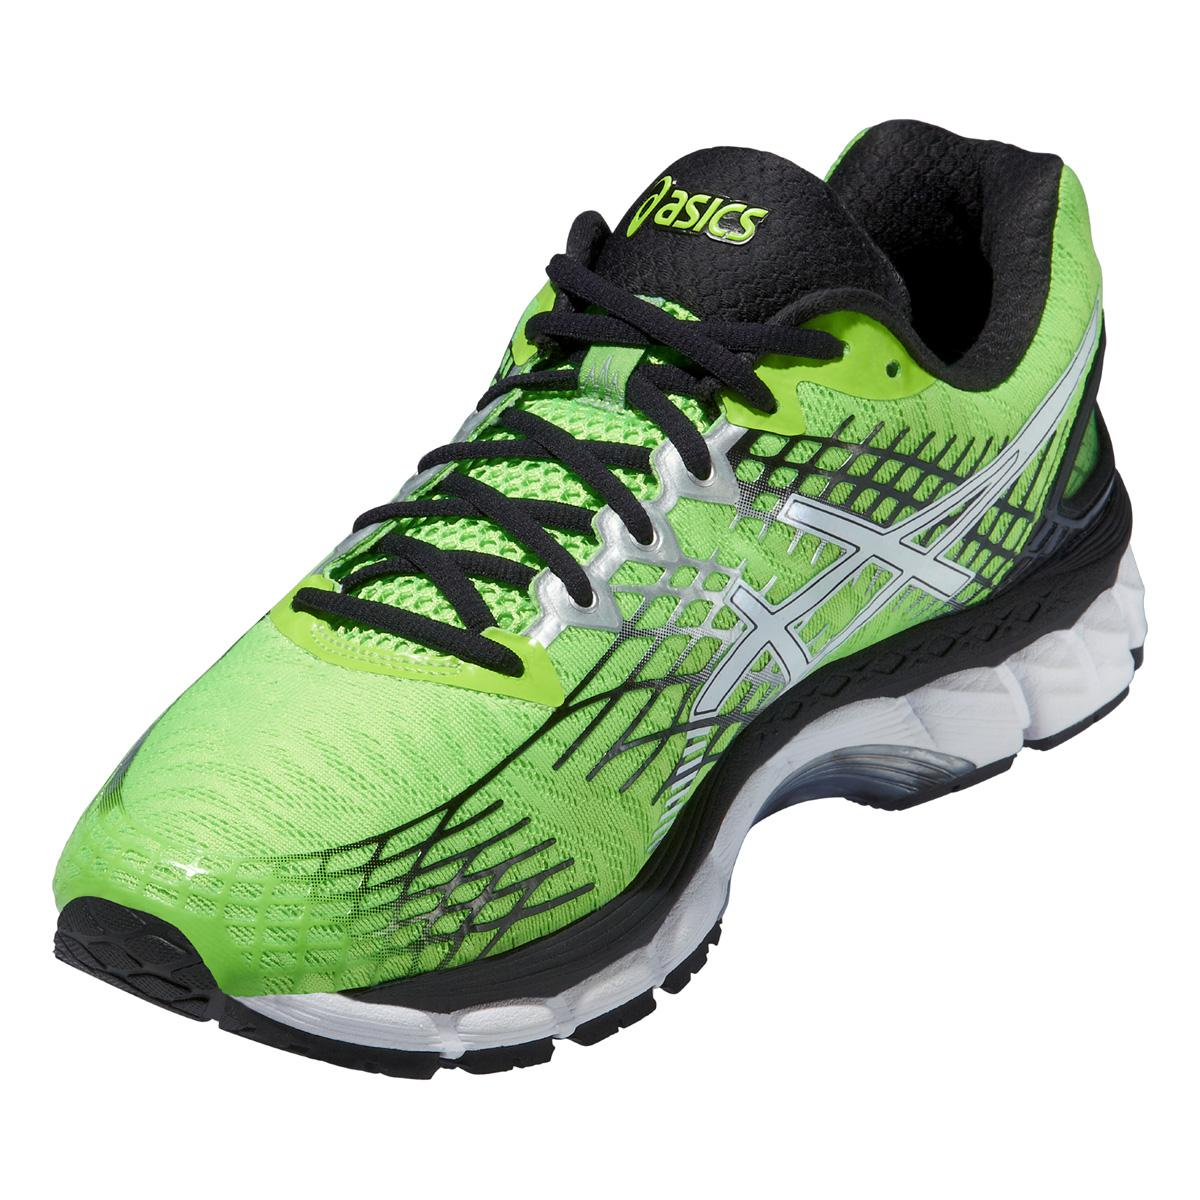 asics mens gel nimbus 17 4e running shoes flash green. Black Bedroom Furniture Sets. Home Design Ideas